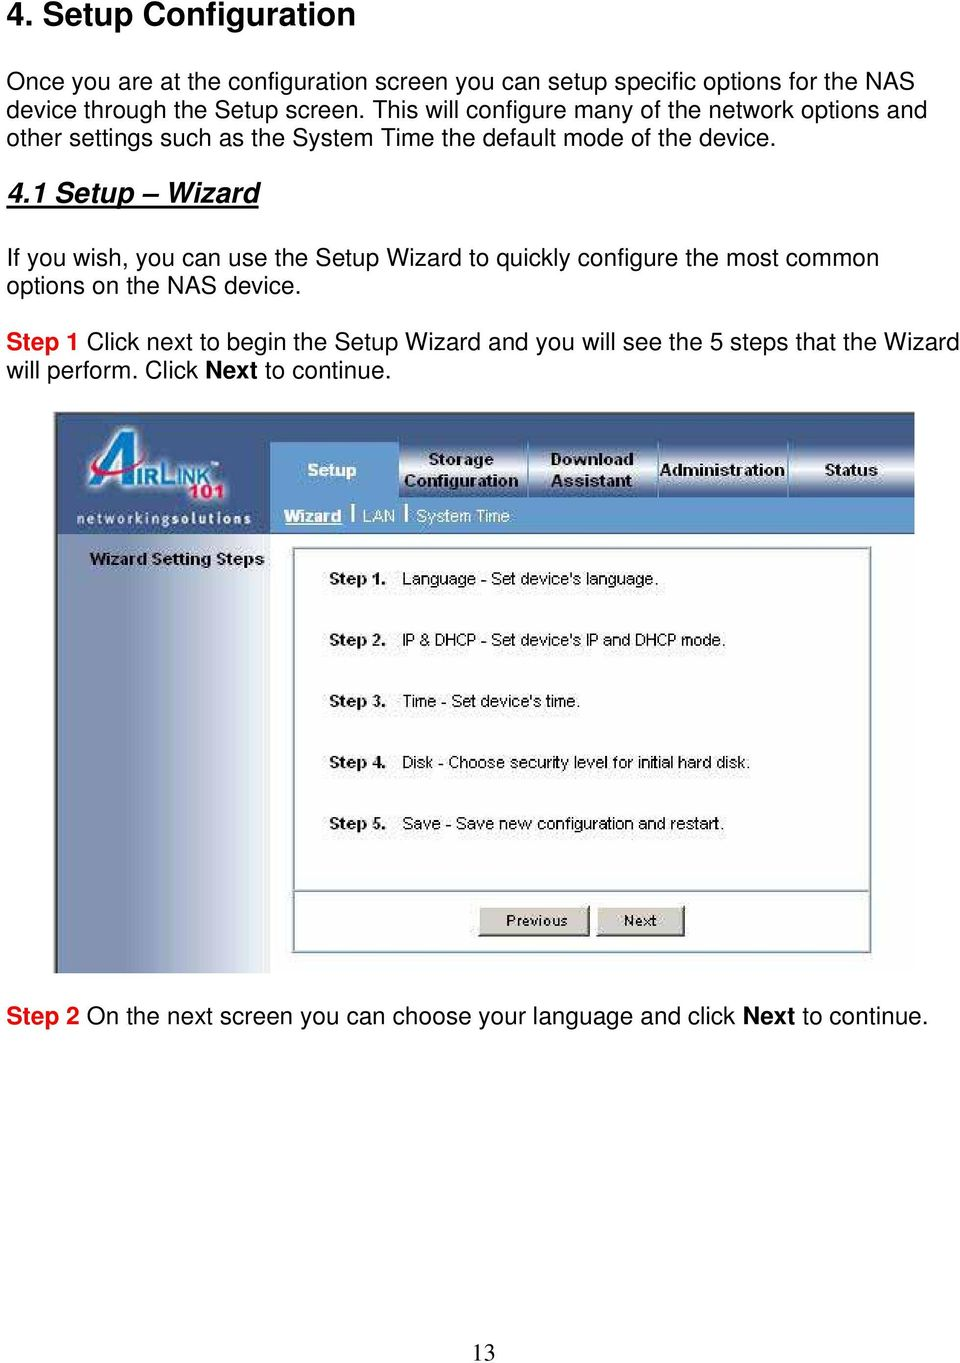 1 Setup Wizard If you wish, you can use the Setup Wizard to quickly configure the most common options on the NAS device.